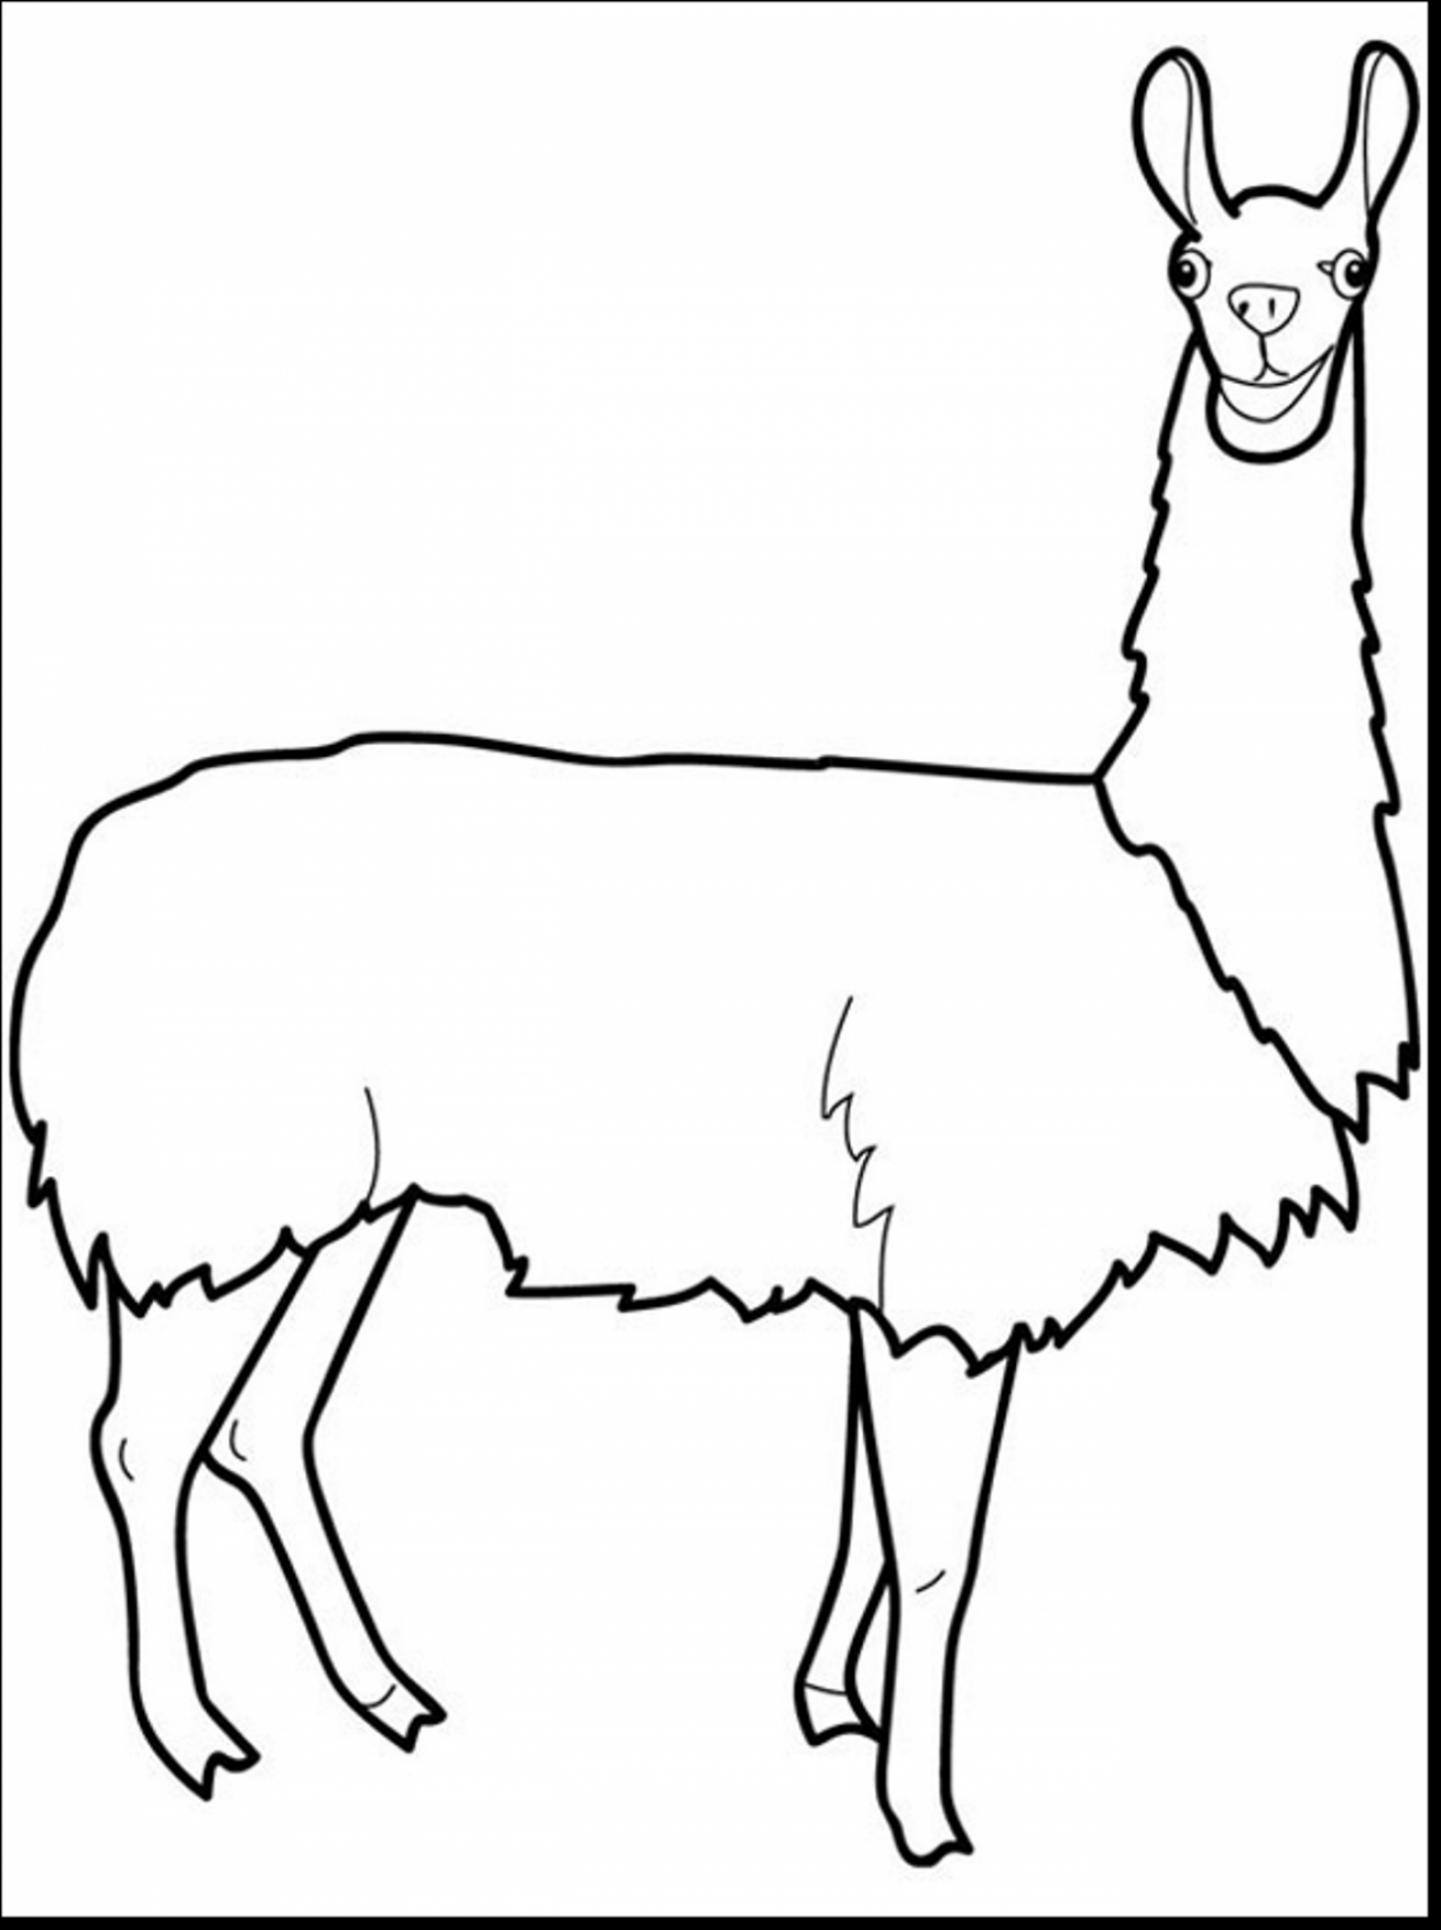 1441x1930 Remarkable Llama Clip Art Black And White With Llama Coloring